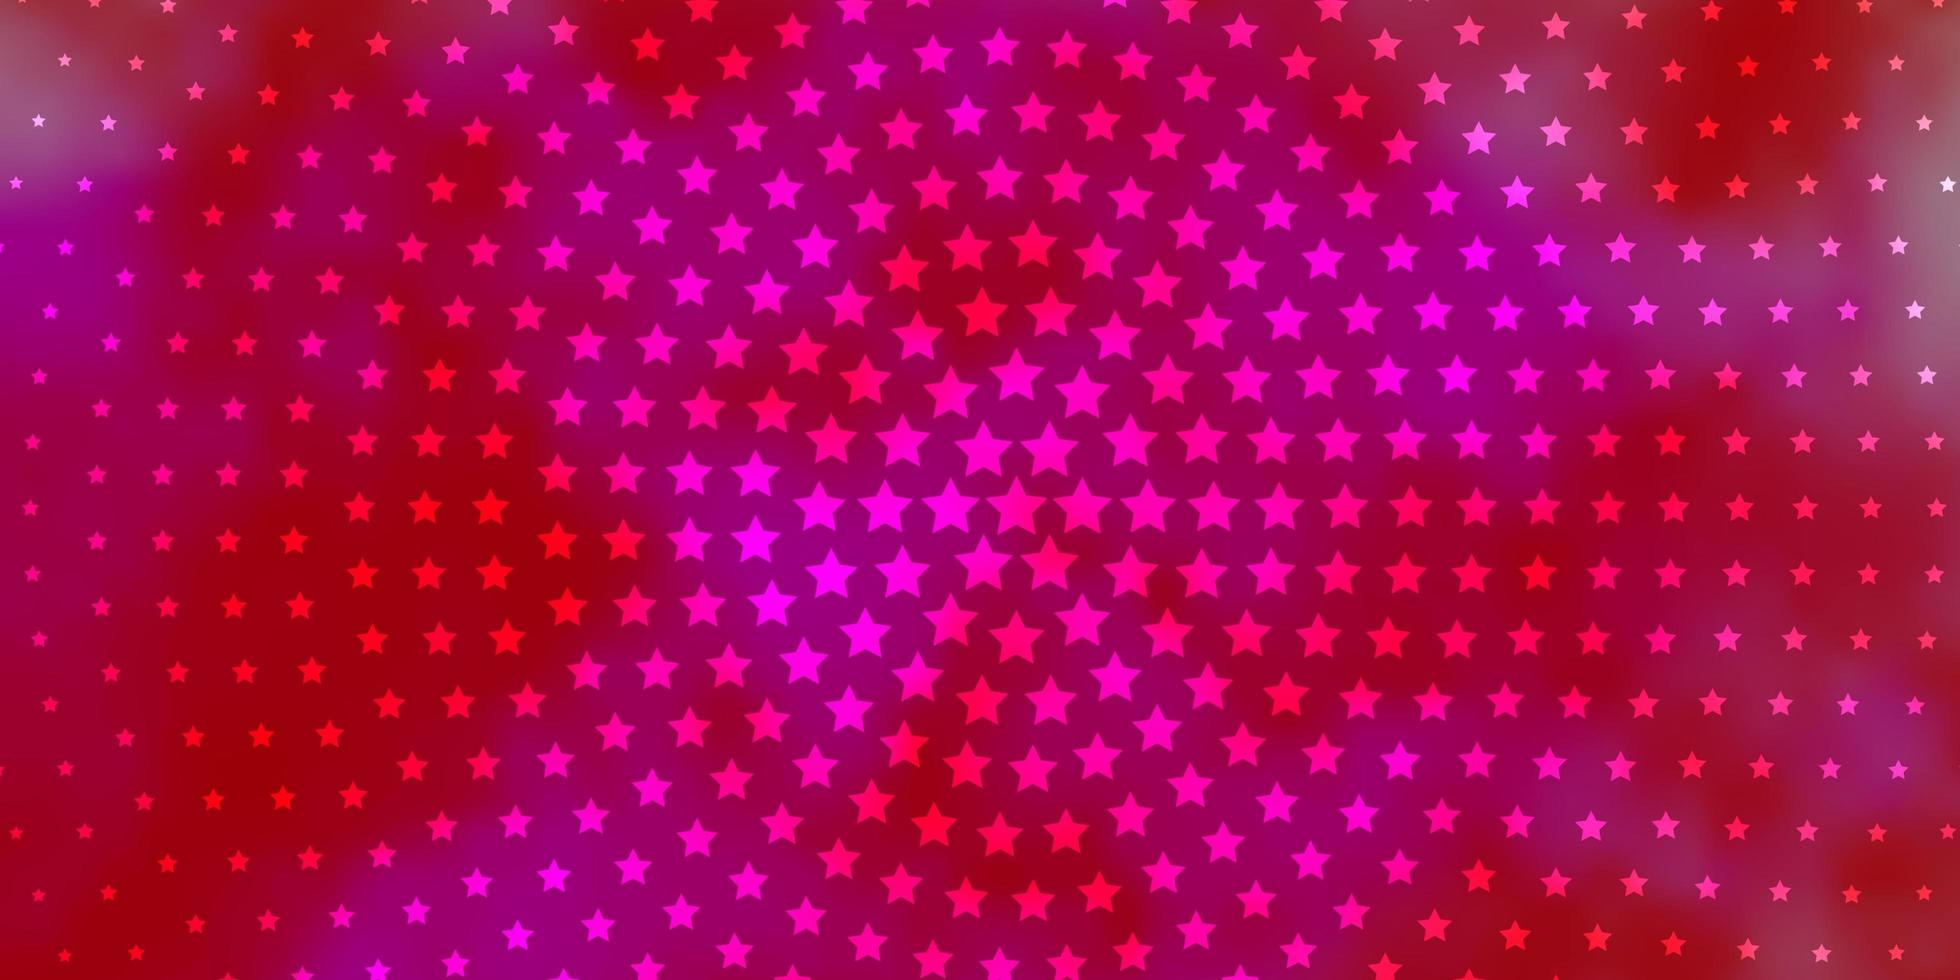 Red and pink texture with beautiful stars. vector